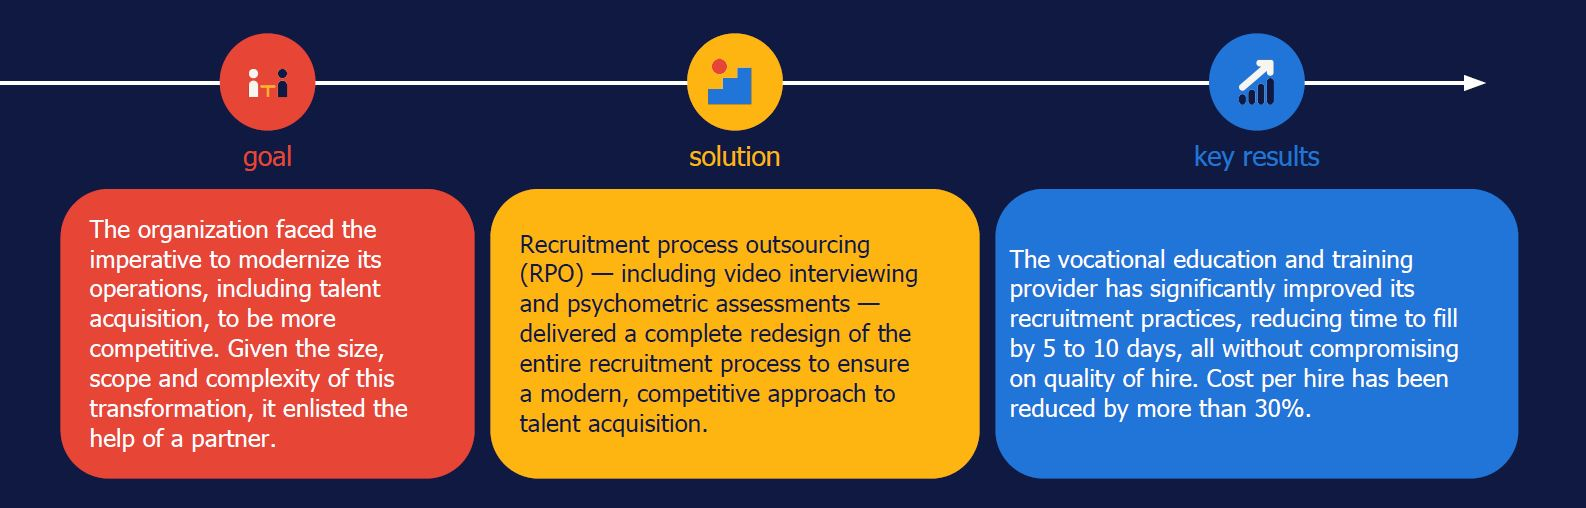 Randstad Sourceright RPO case study education HR tech